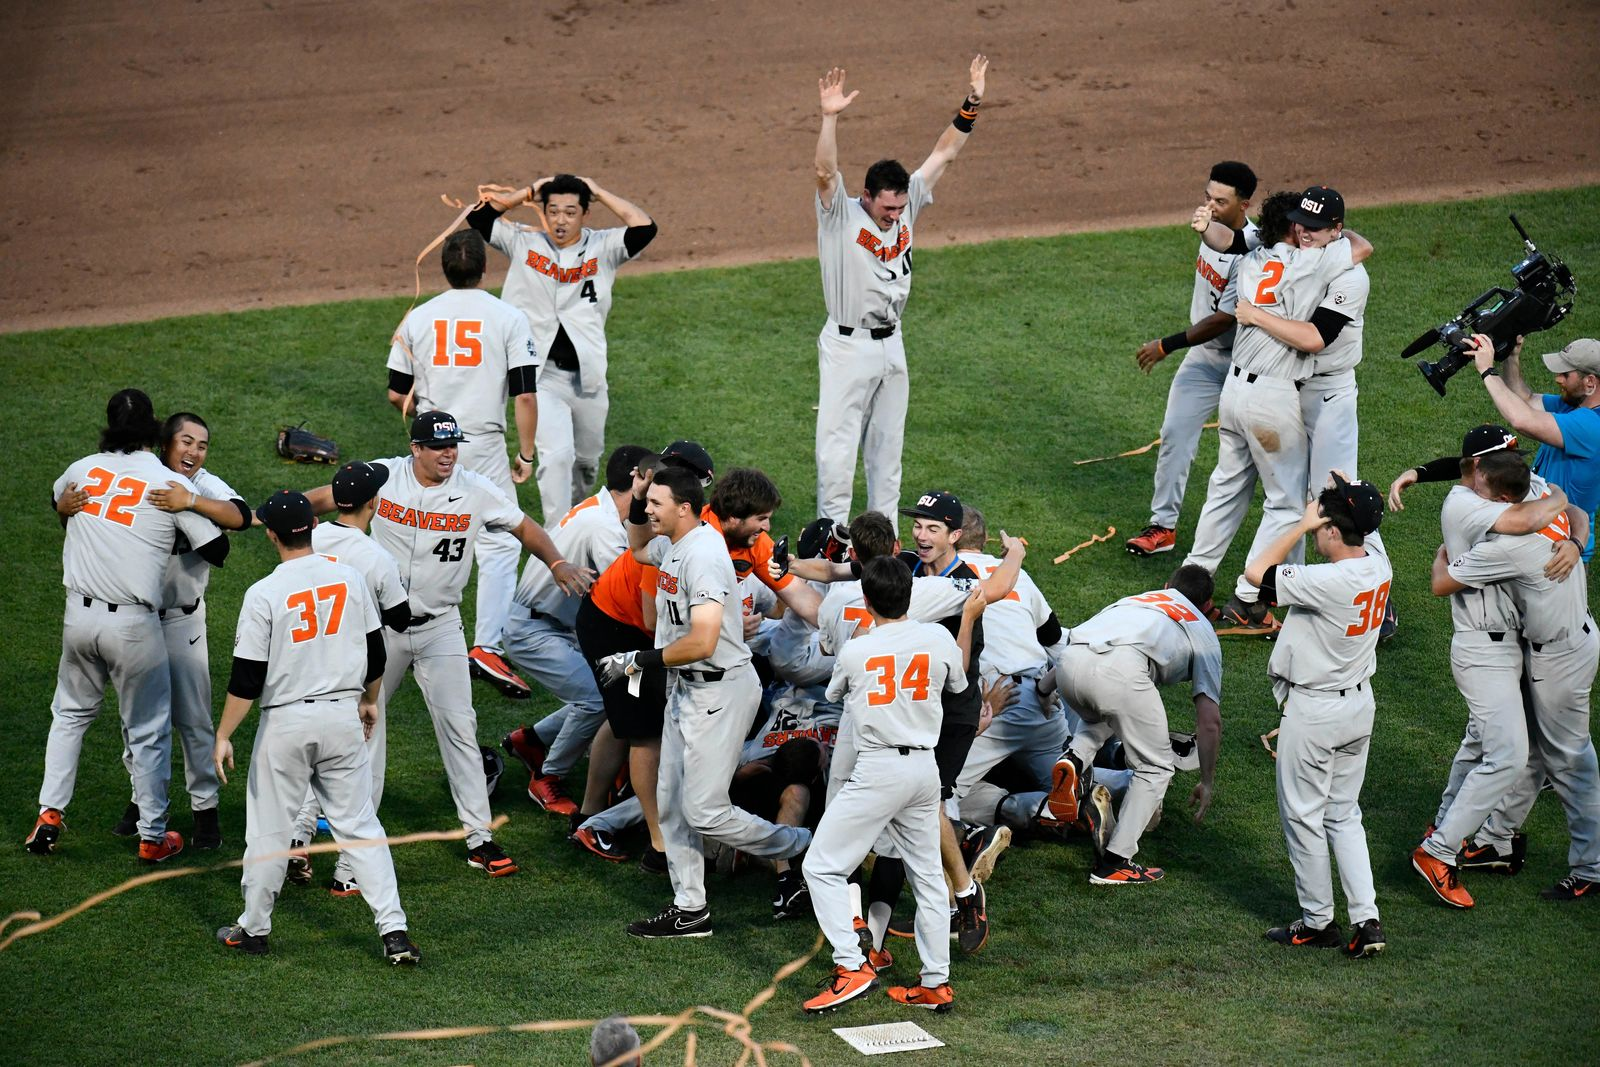 Oregon State players celebrate after winning Game 3 of the NCAA College World Series baseball finals in Omaha, Neb., Thursday, June 28, 2018. Oregon State defeated Arkansas 5-0. (AP Photo/Ashley Pales)